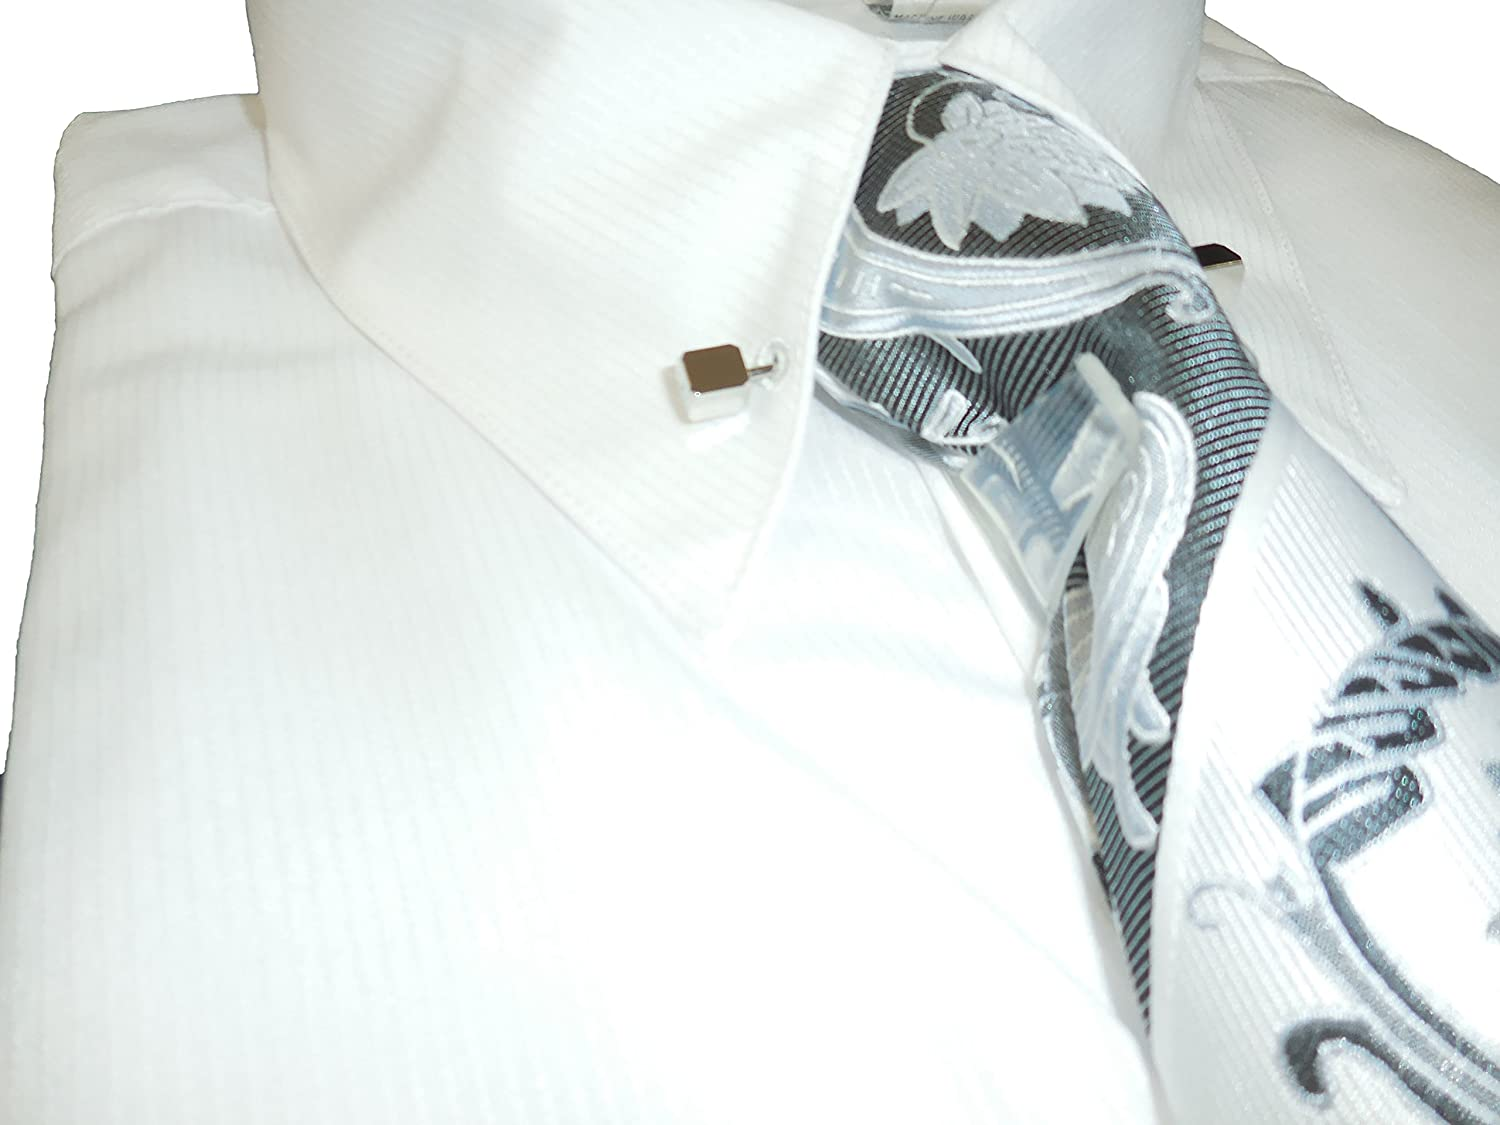 Tommy Hilfiger White French Cuff Dress Shirt With Collar Bar